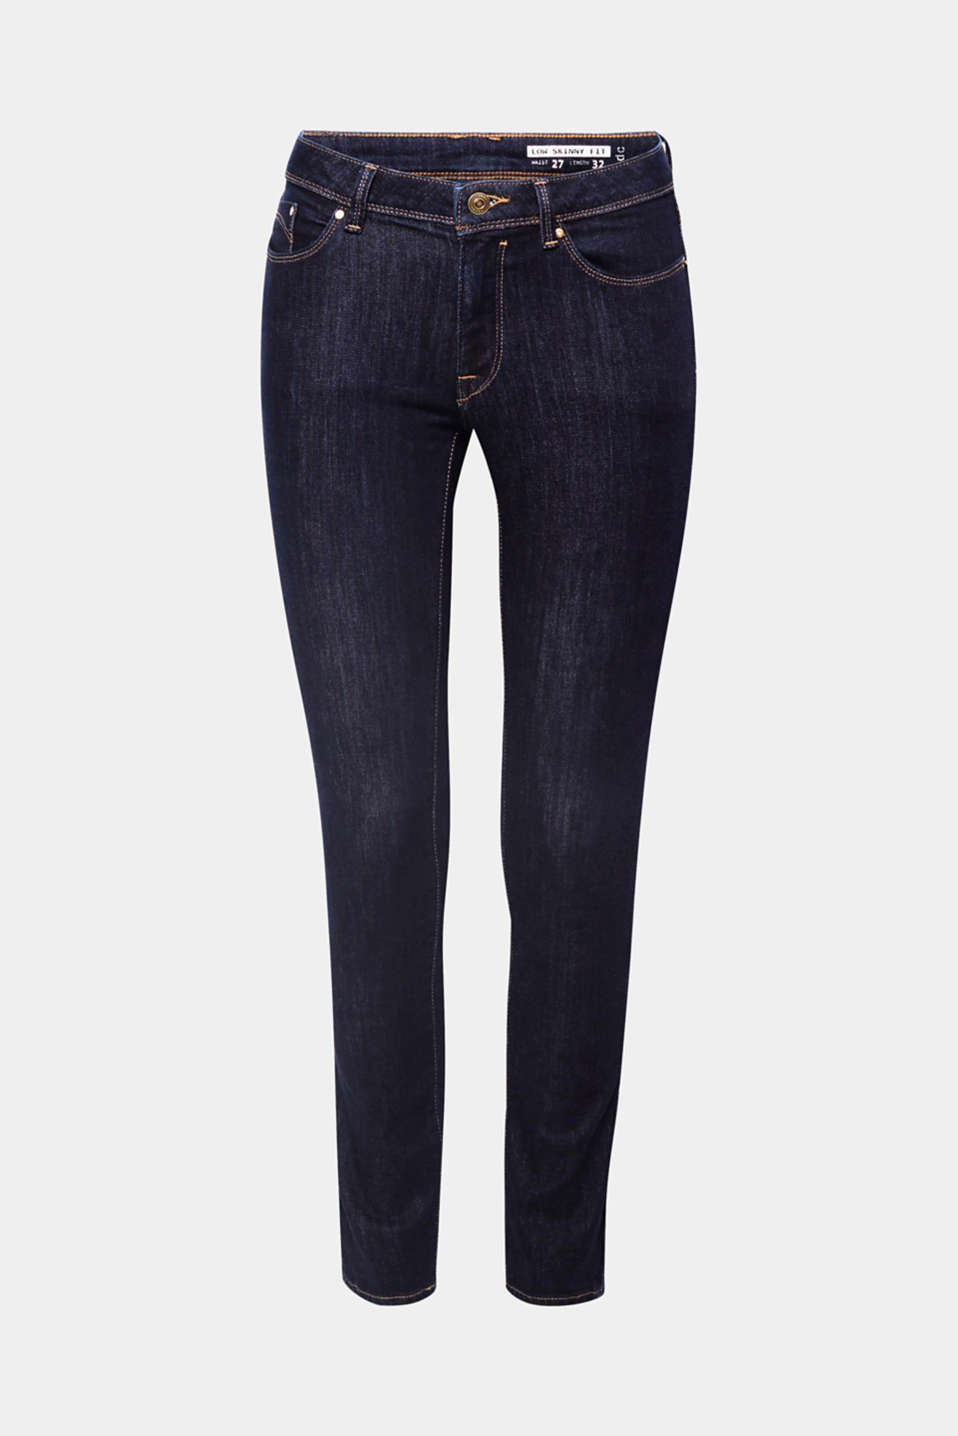 Cool denim basic containing premium, environmentally-friendly organic cotton: these skinny, stretch denim jeans are super comfy and create a stunning silhouette.